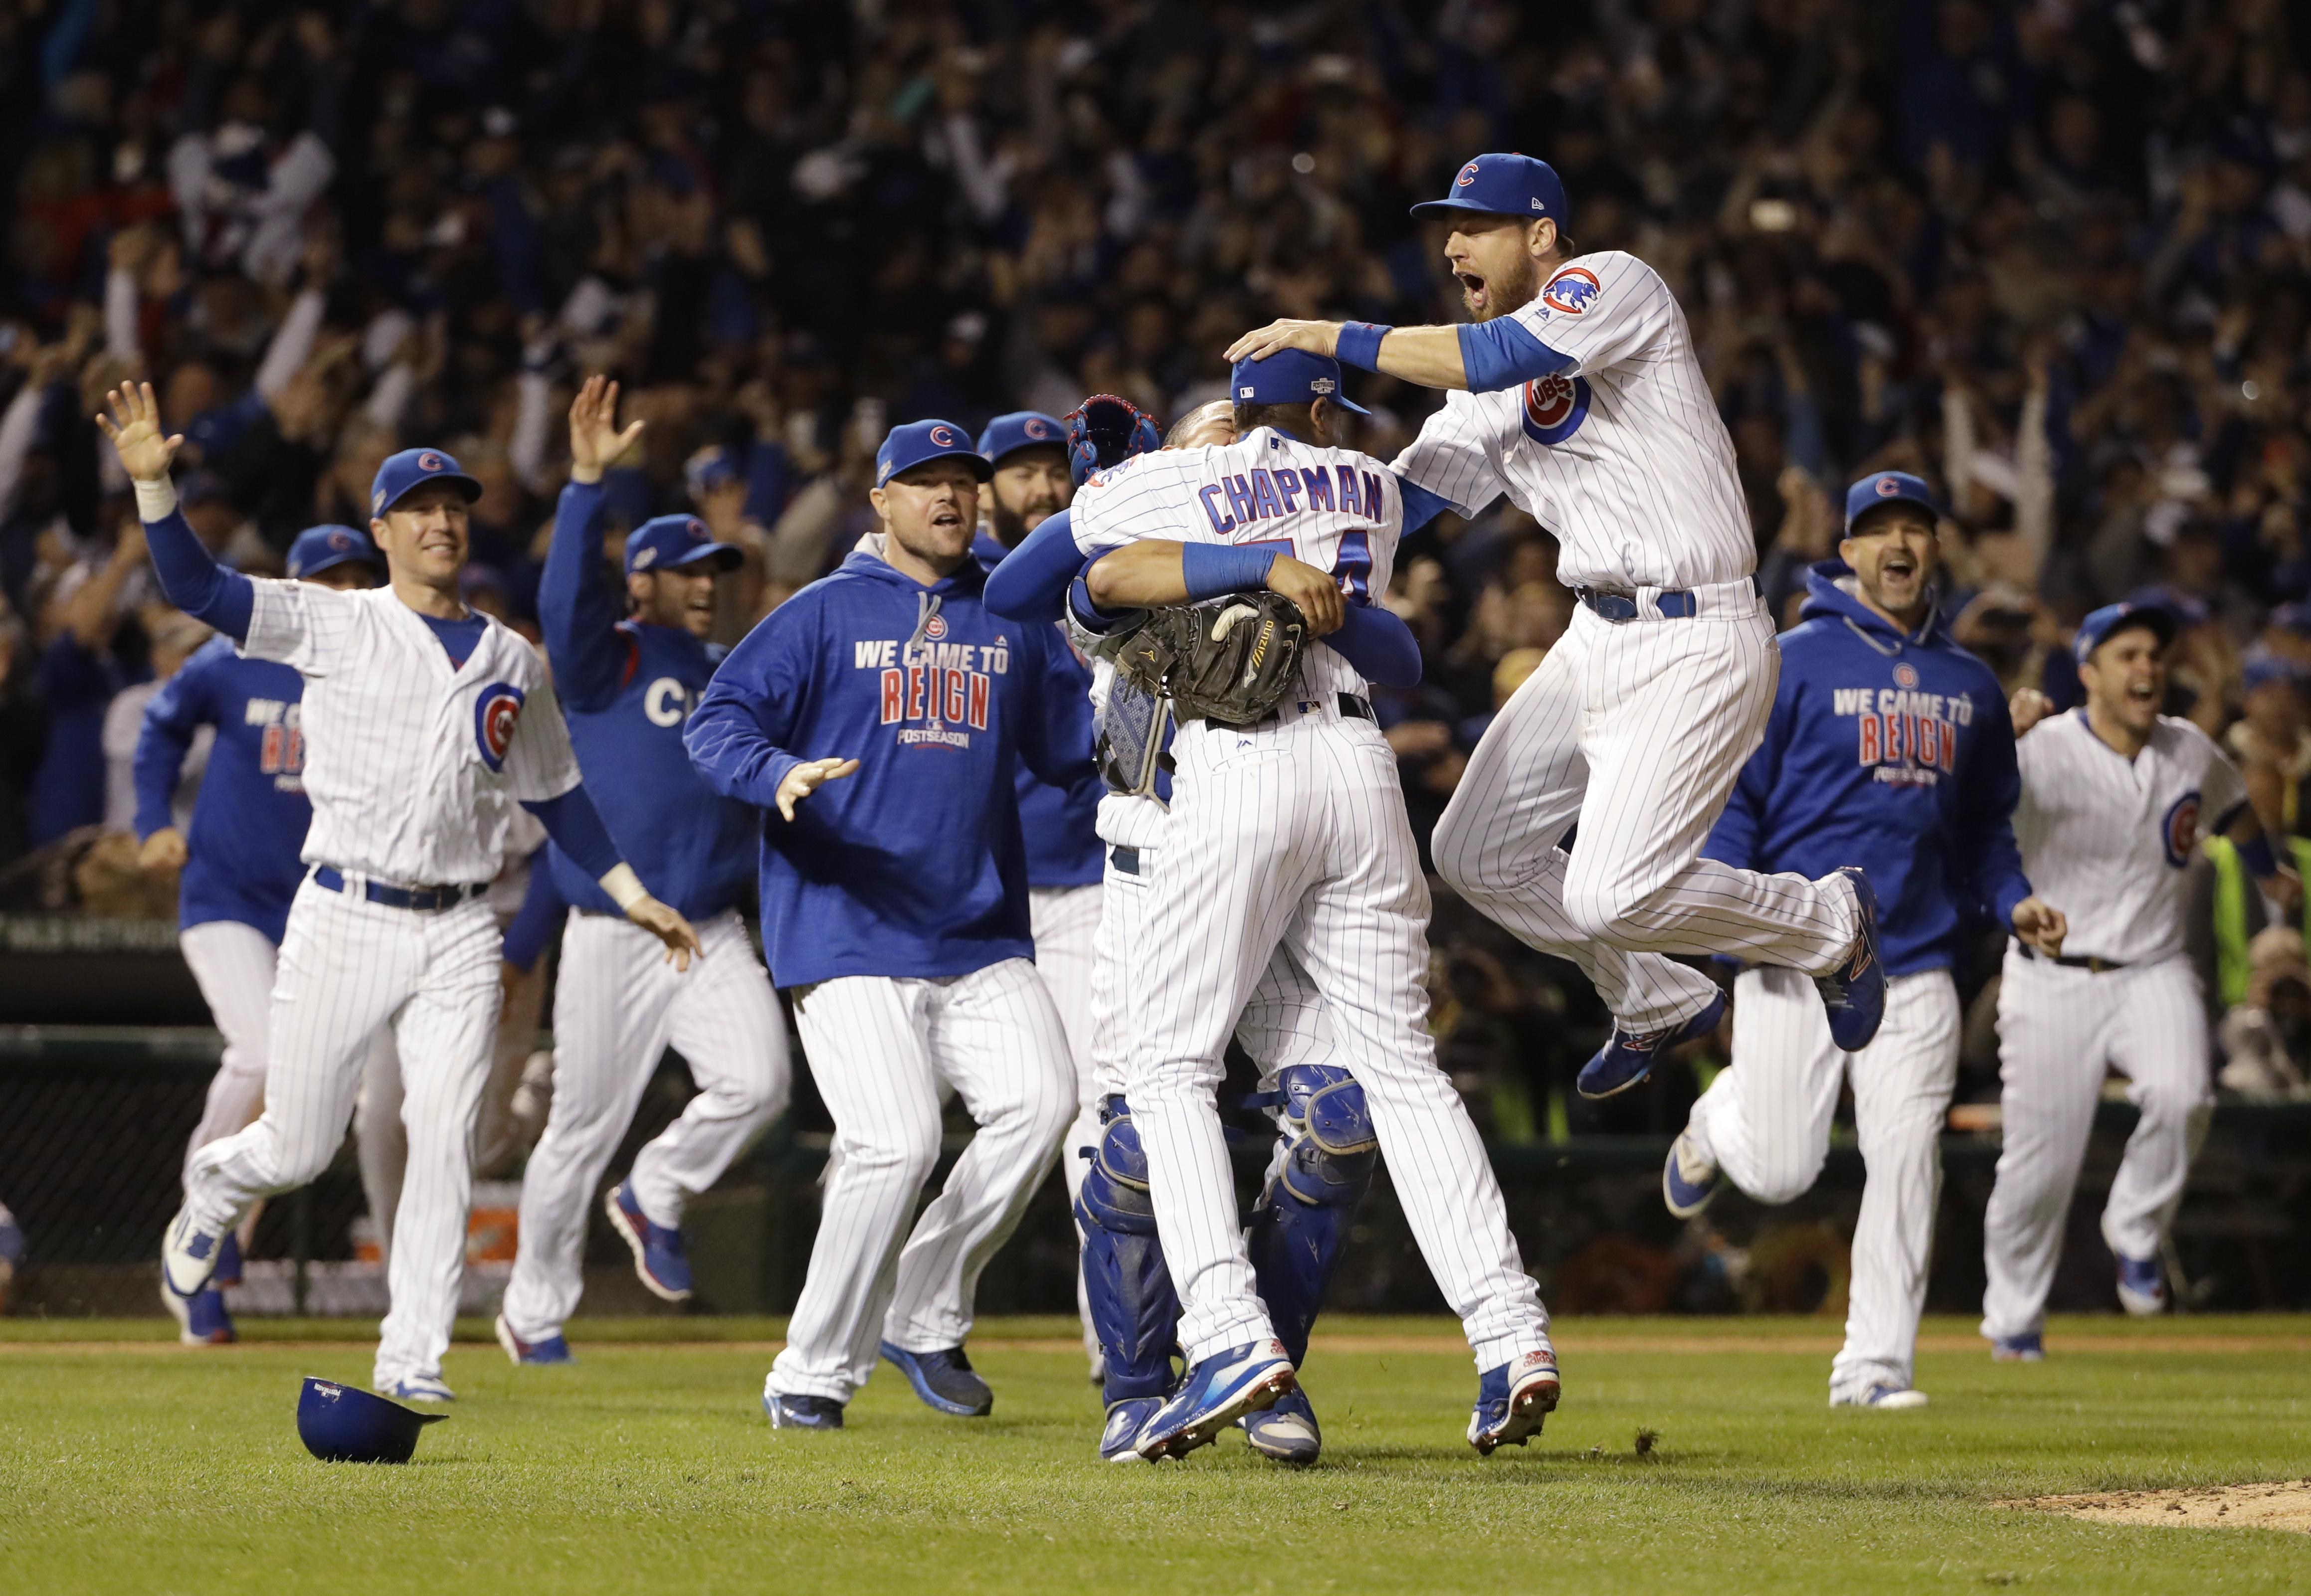 At long last, Chicago Cubs are World Series bound